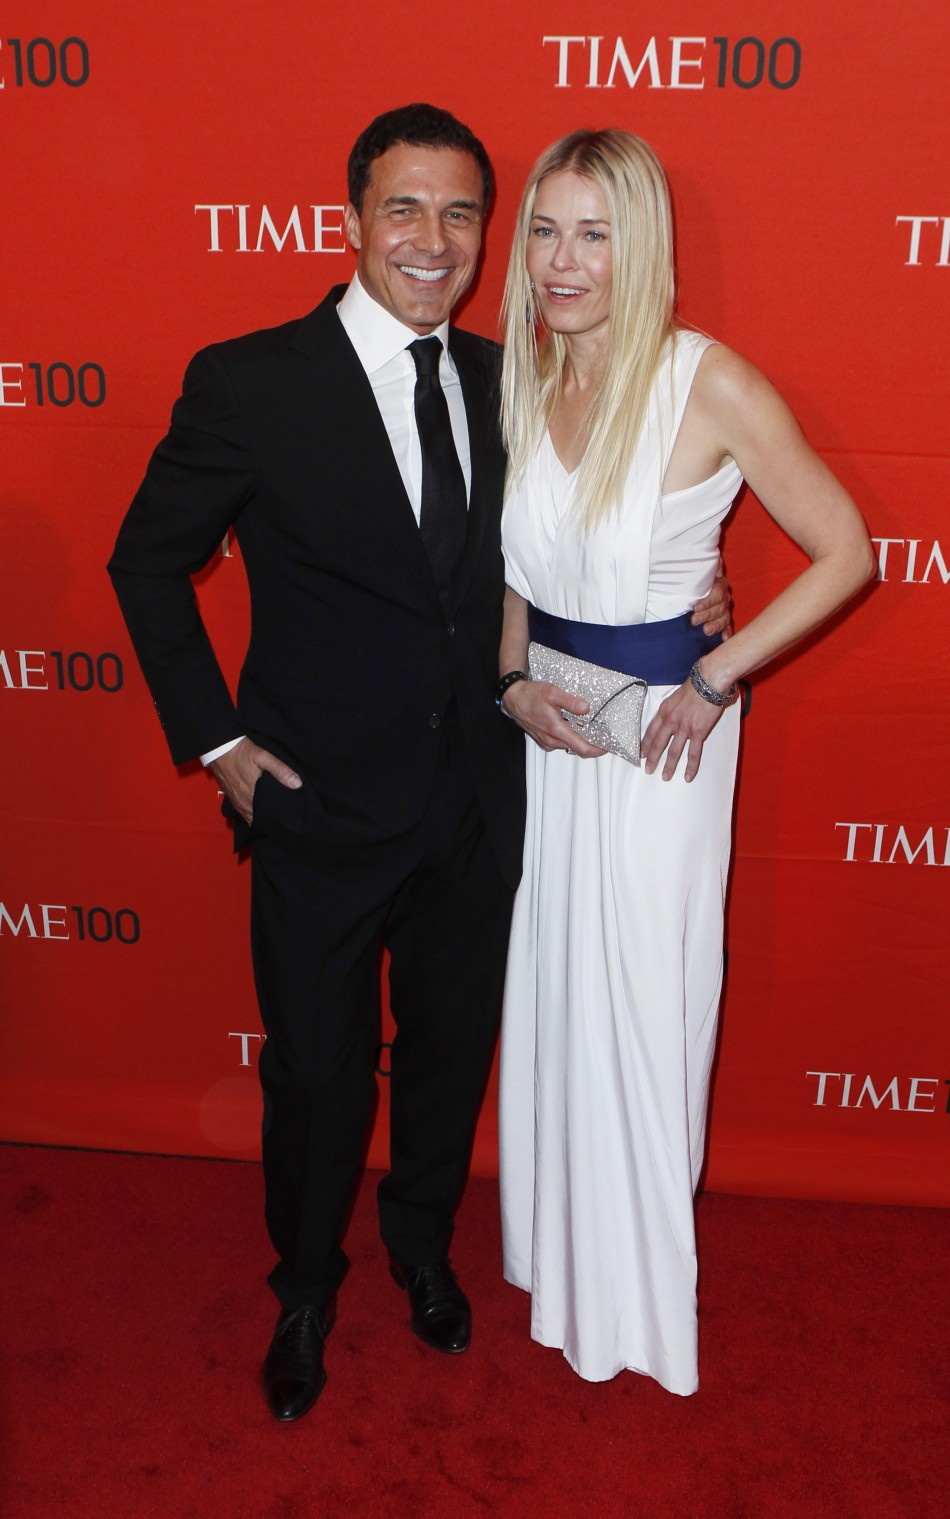 Actress Chelsea Handler arrives with Andre Balazs to be honored at the Time 100 Gala in New York